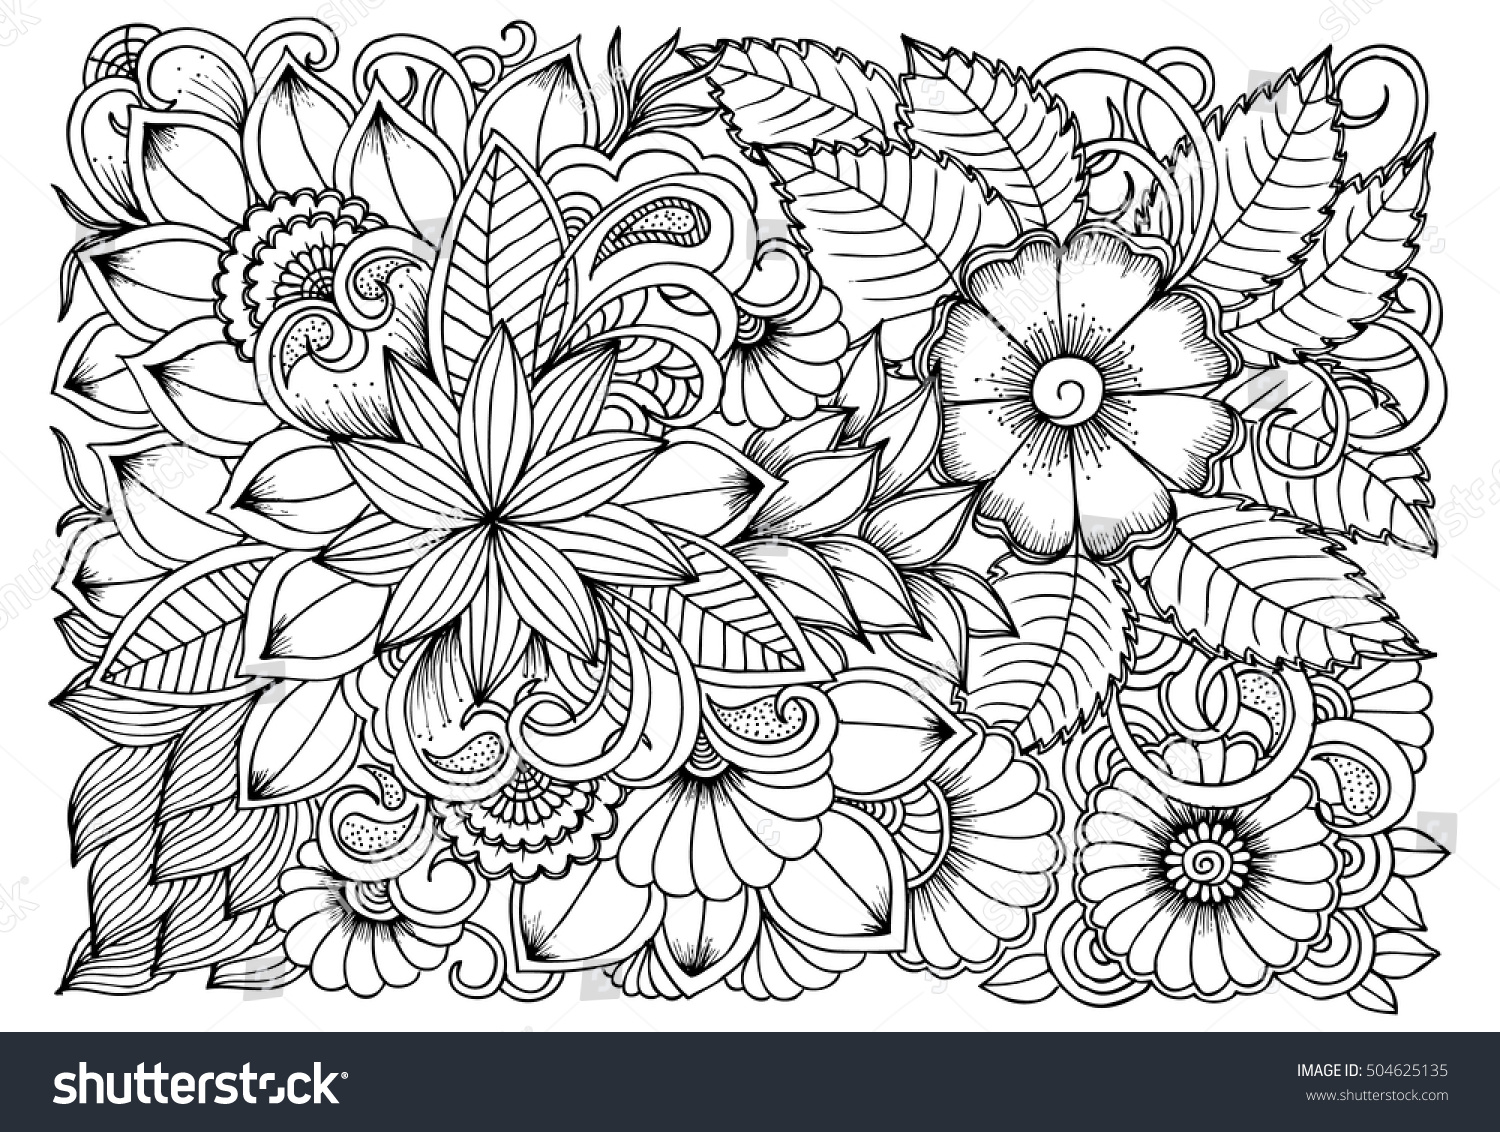 Black And White Flower Pattern For Coloring Doodle Floral Drawing